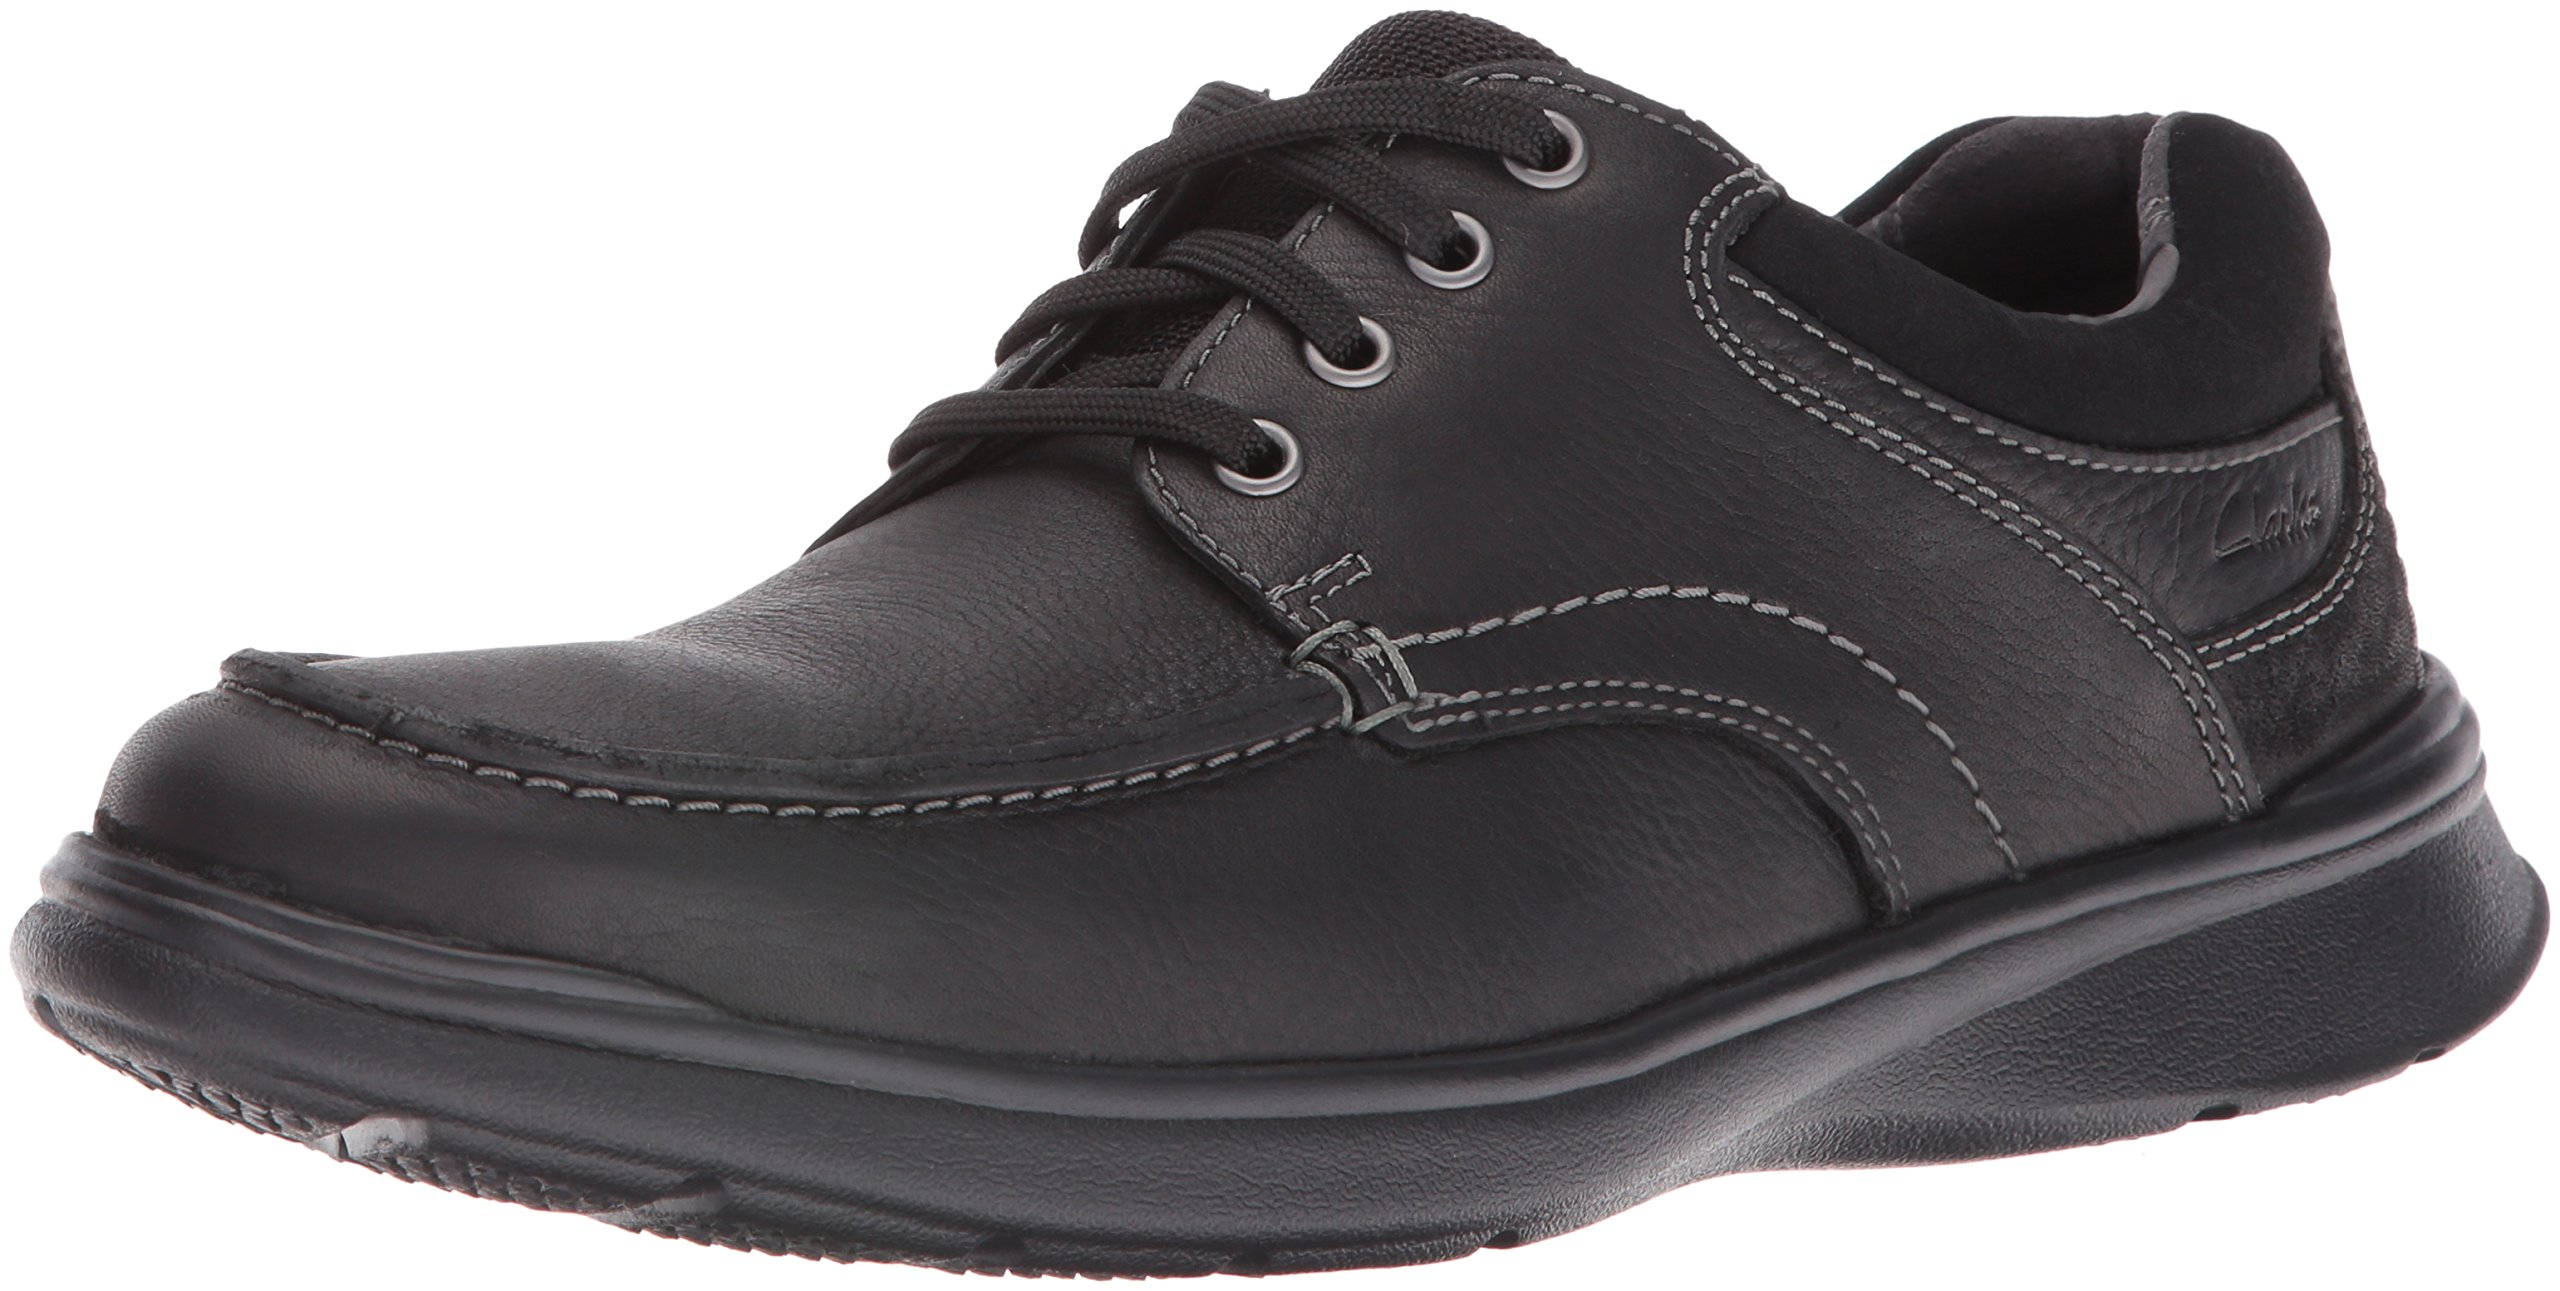 CLARKS Men's Cotrell Edge Oxford, Black Oily Leather, 8.5 M US by CLARKS